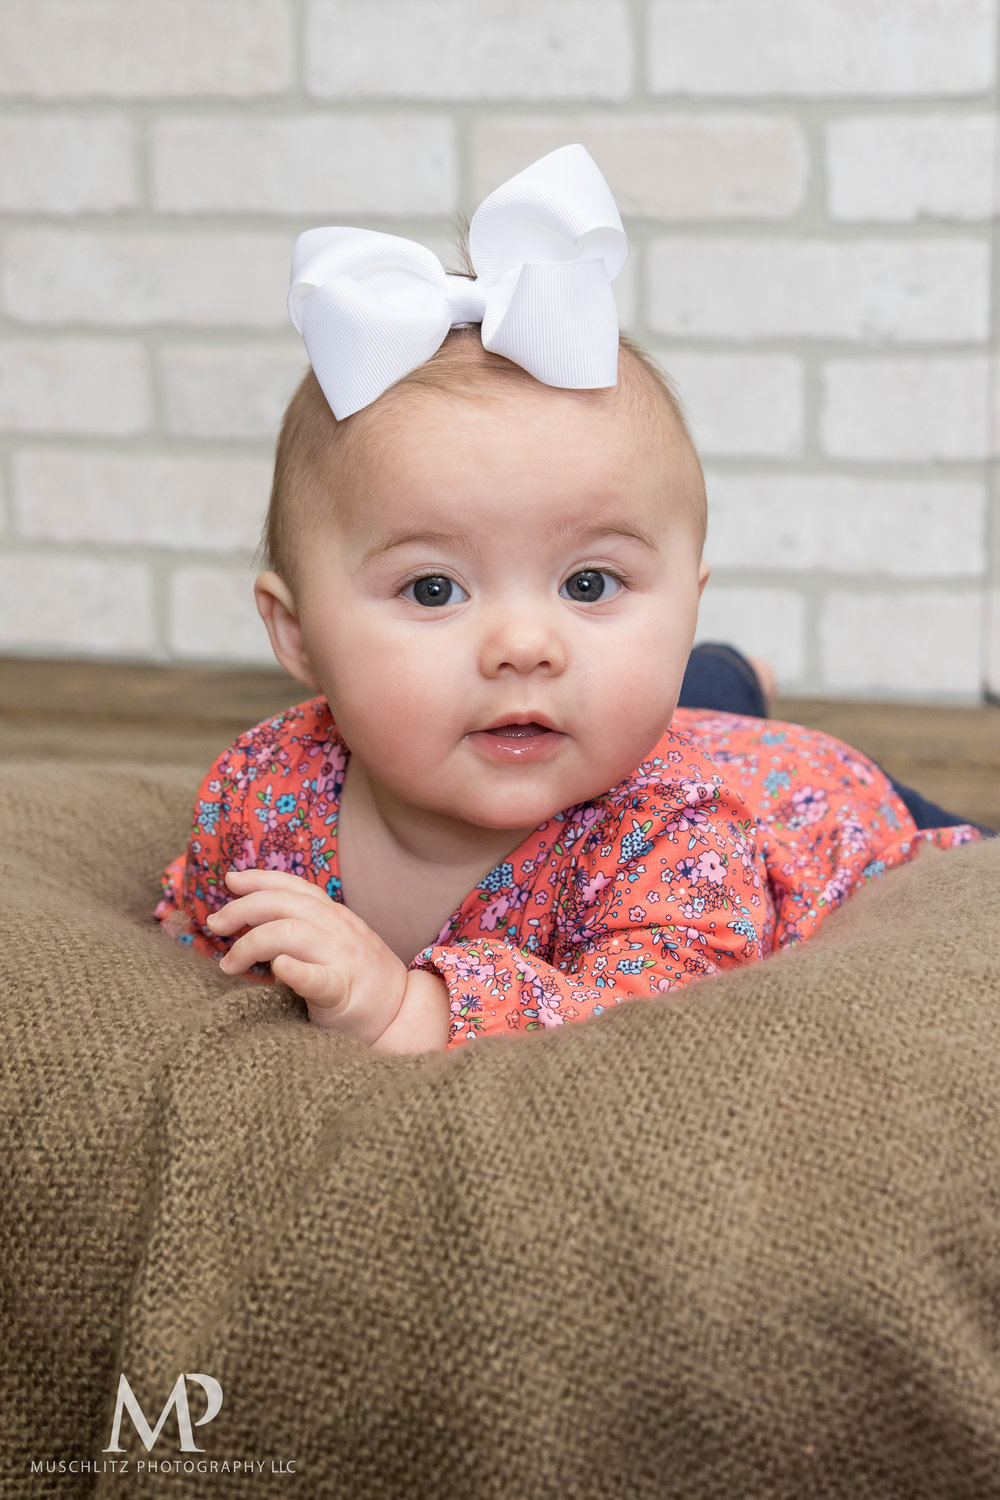 6-month-portraits-baby-photographer-columbus-ohio-gahanna-muschlitz-photography-006.JPG